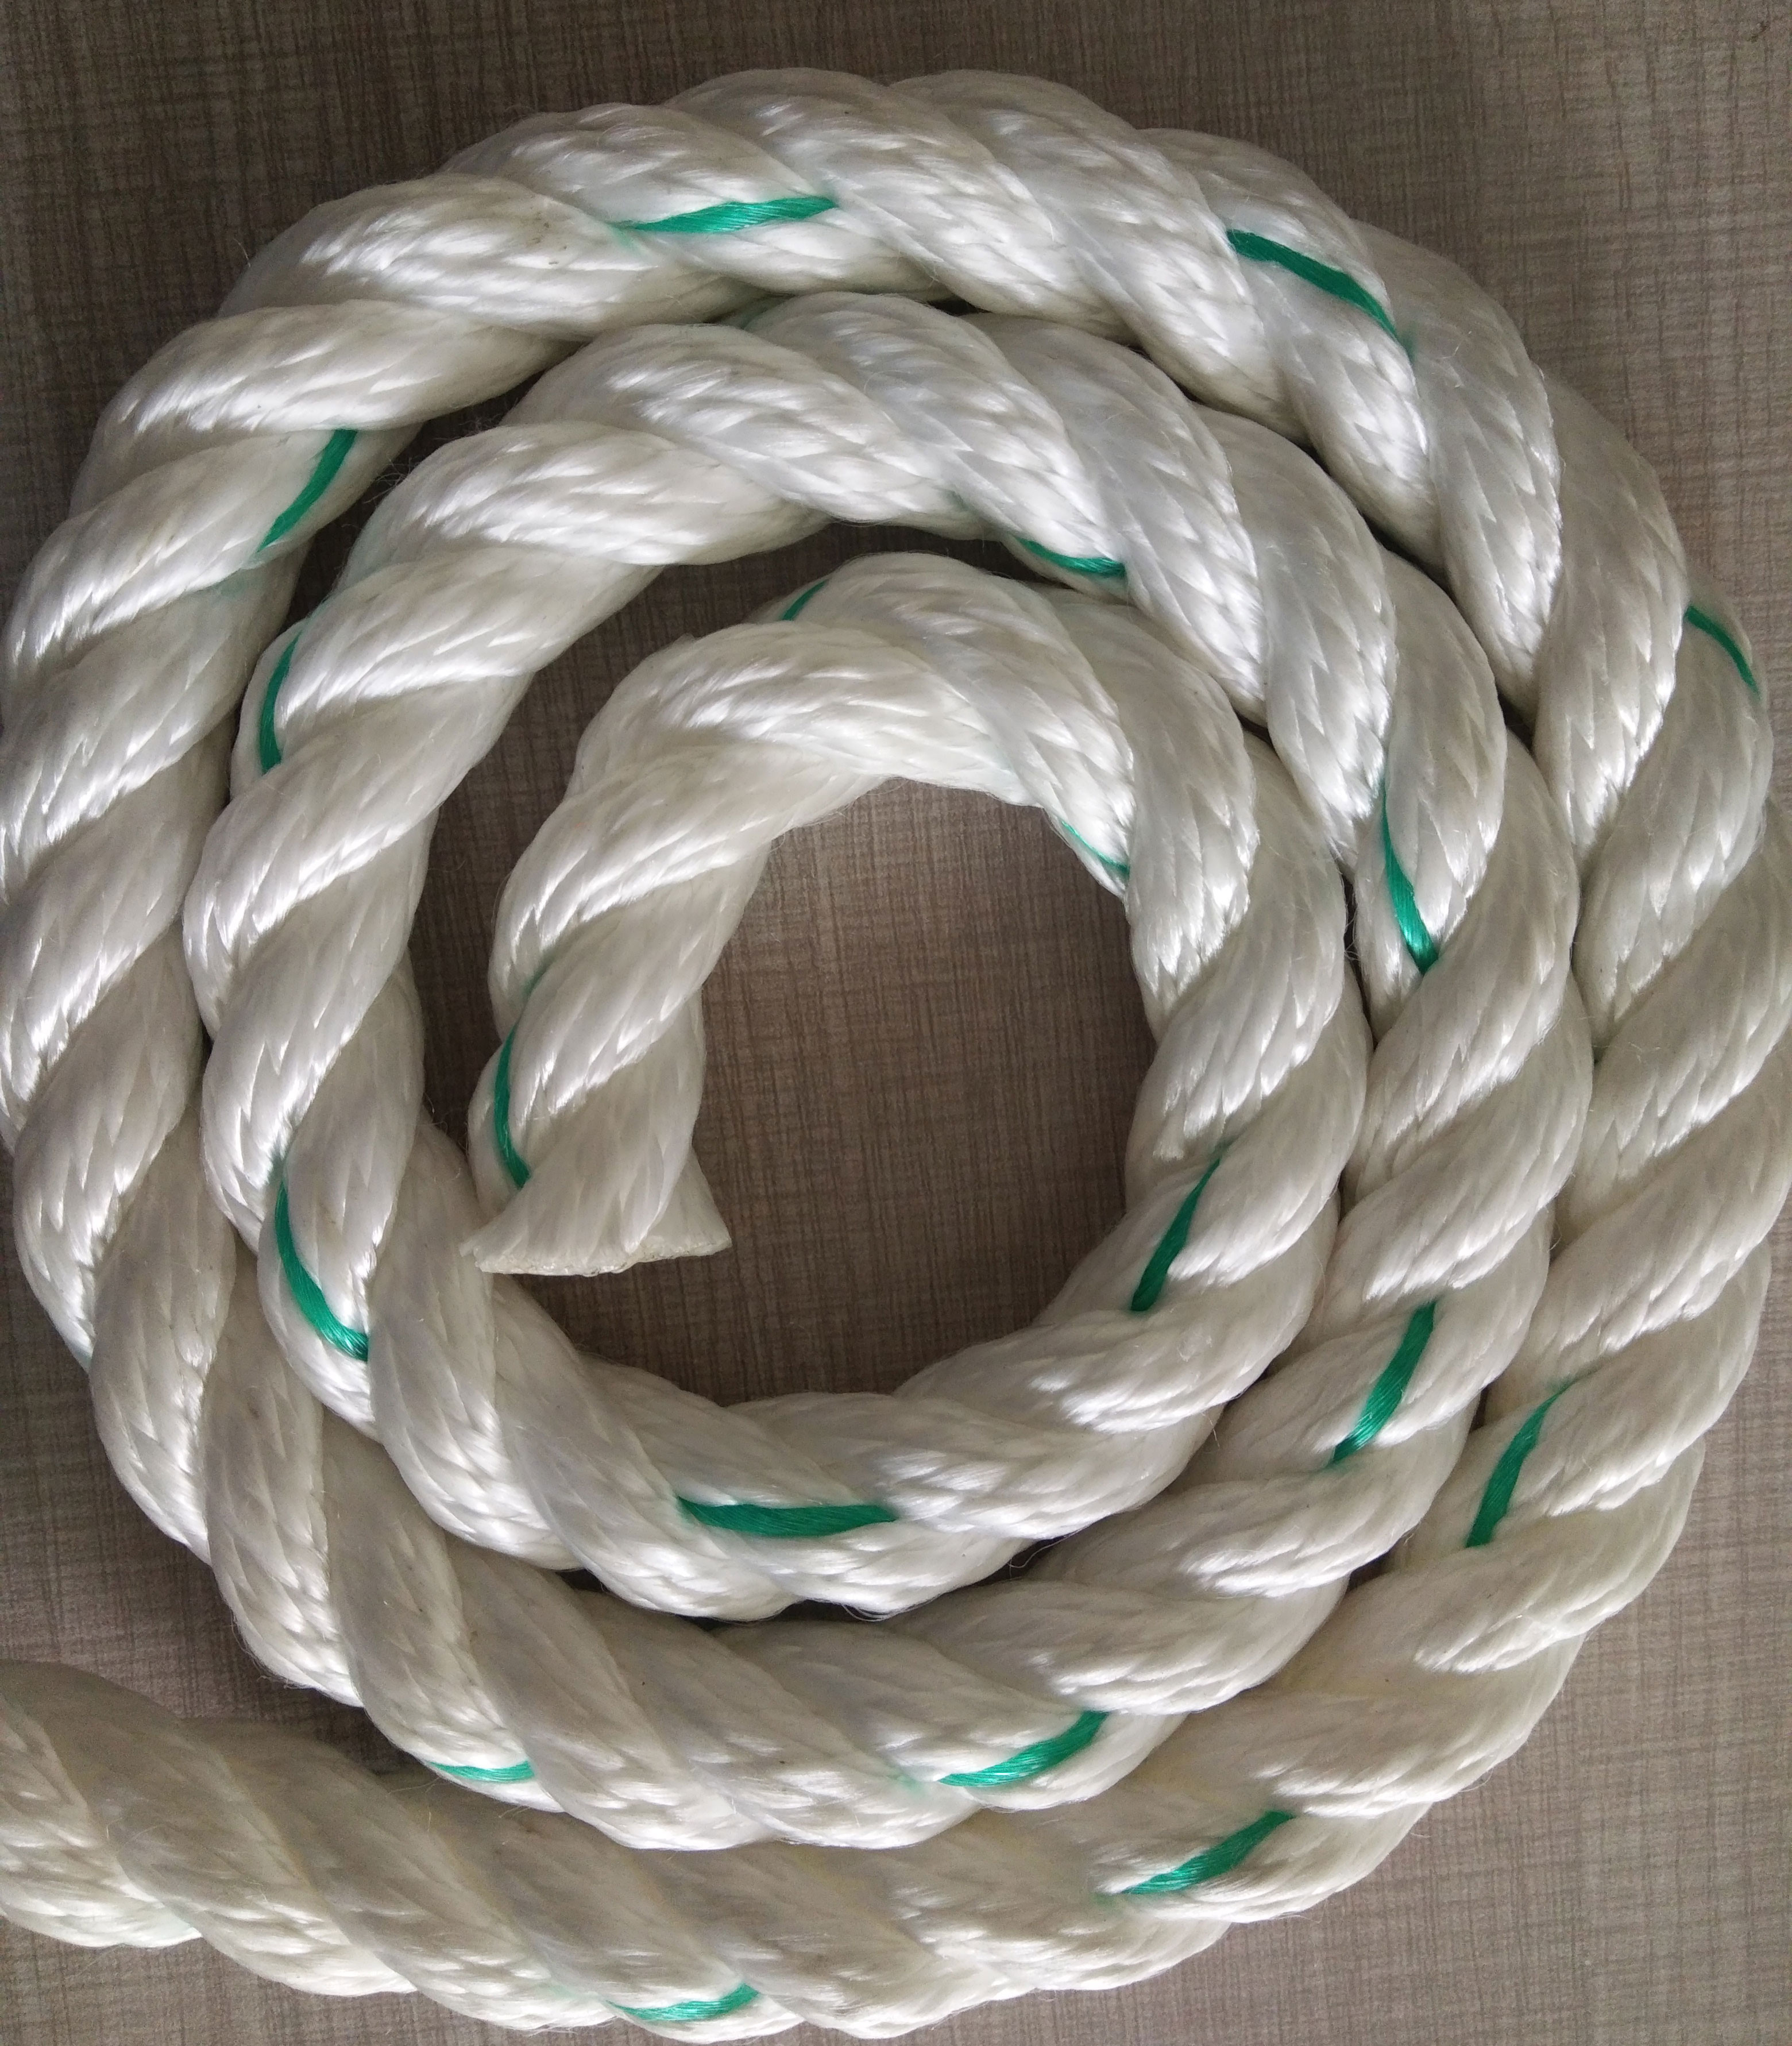 16mm-24mm polypropylene rope Strong quality new,